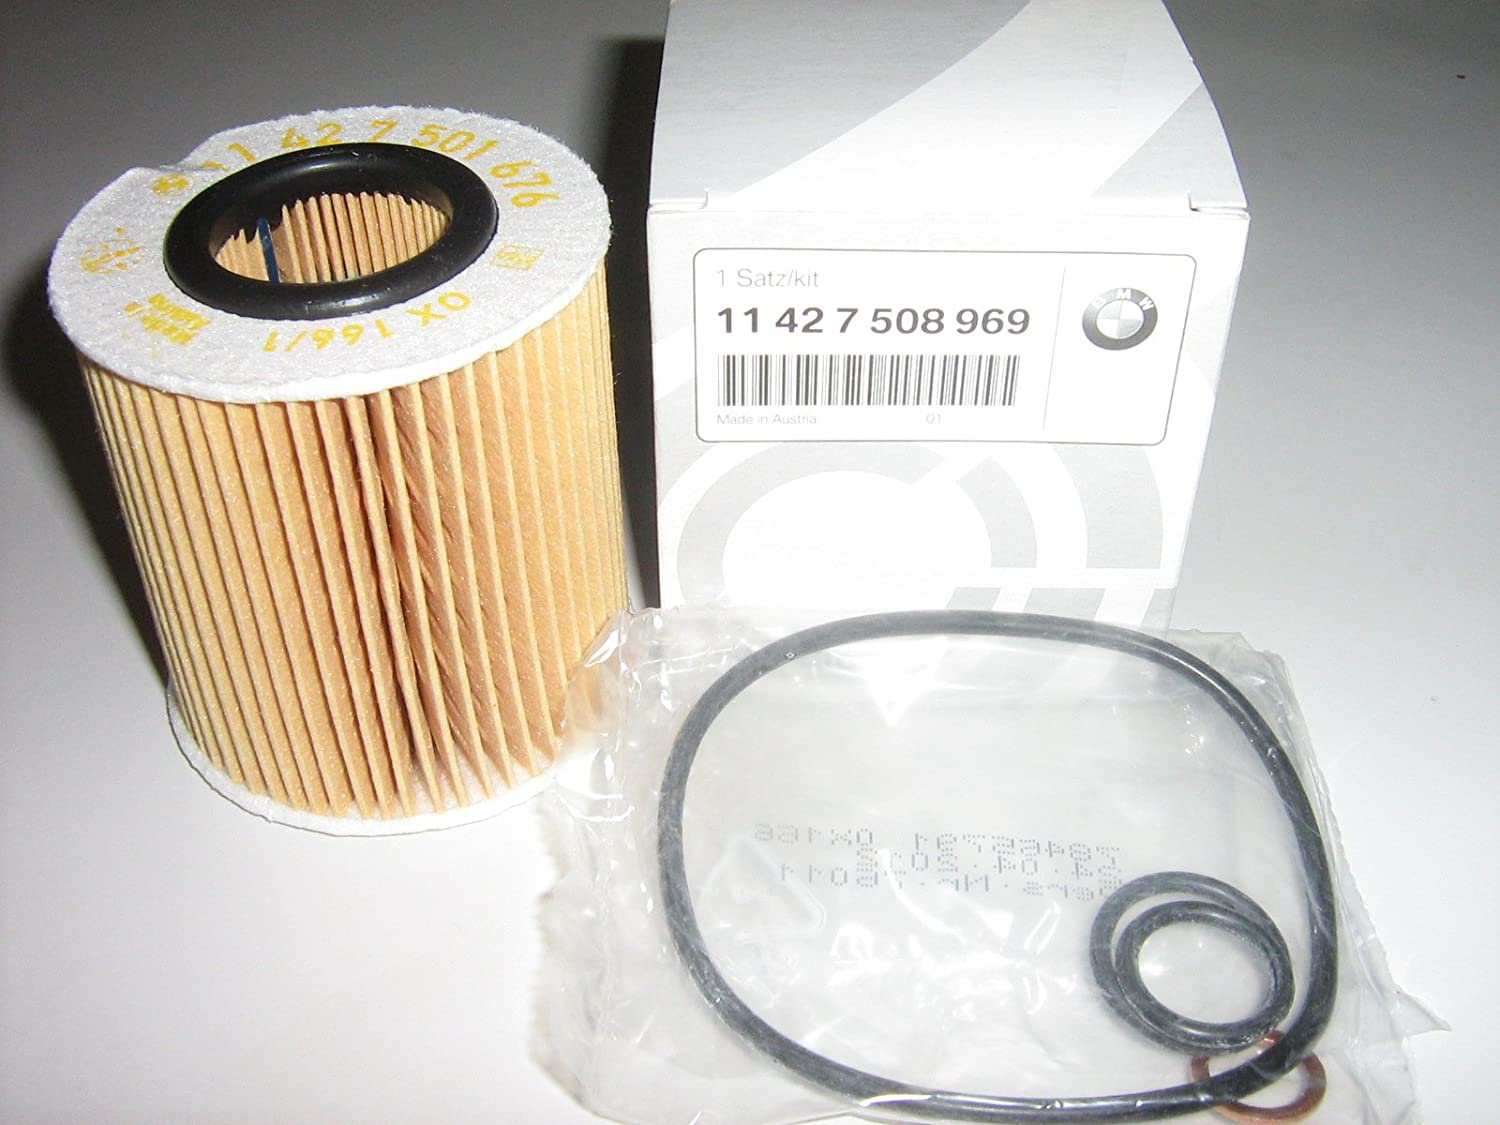 Oil Filter For Bmw Part Number 11 42 7 508 969 Fits All 4 Cylinder Petrol 02 Amazon De Auto